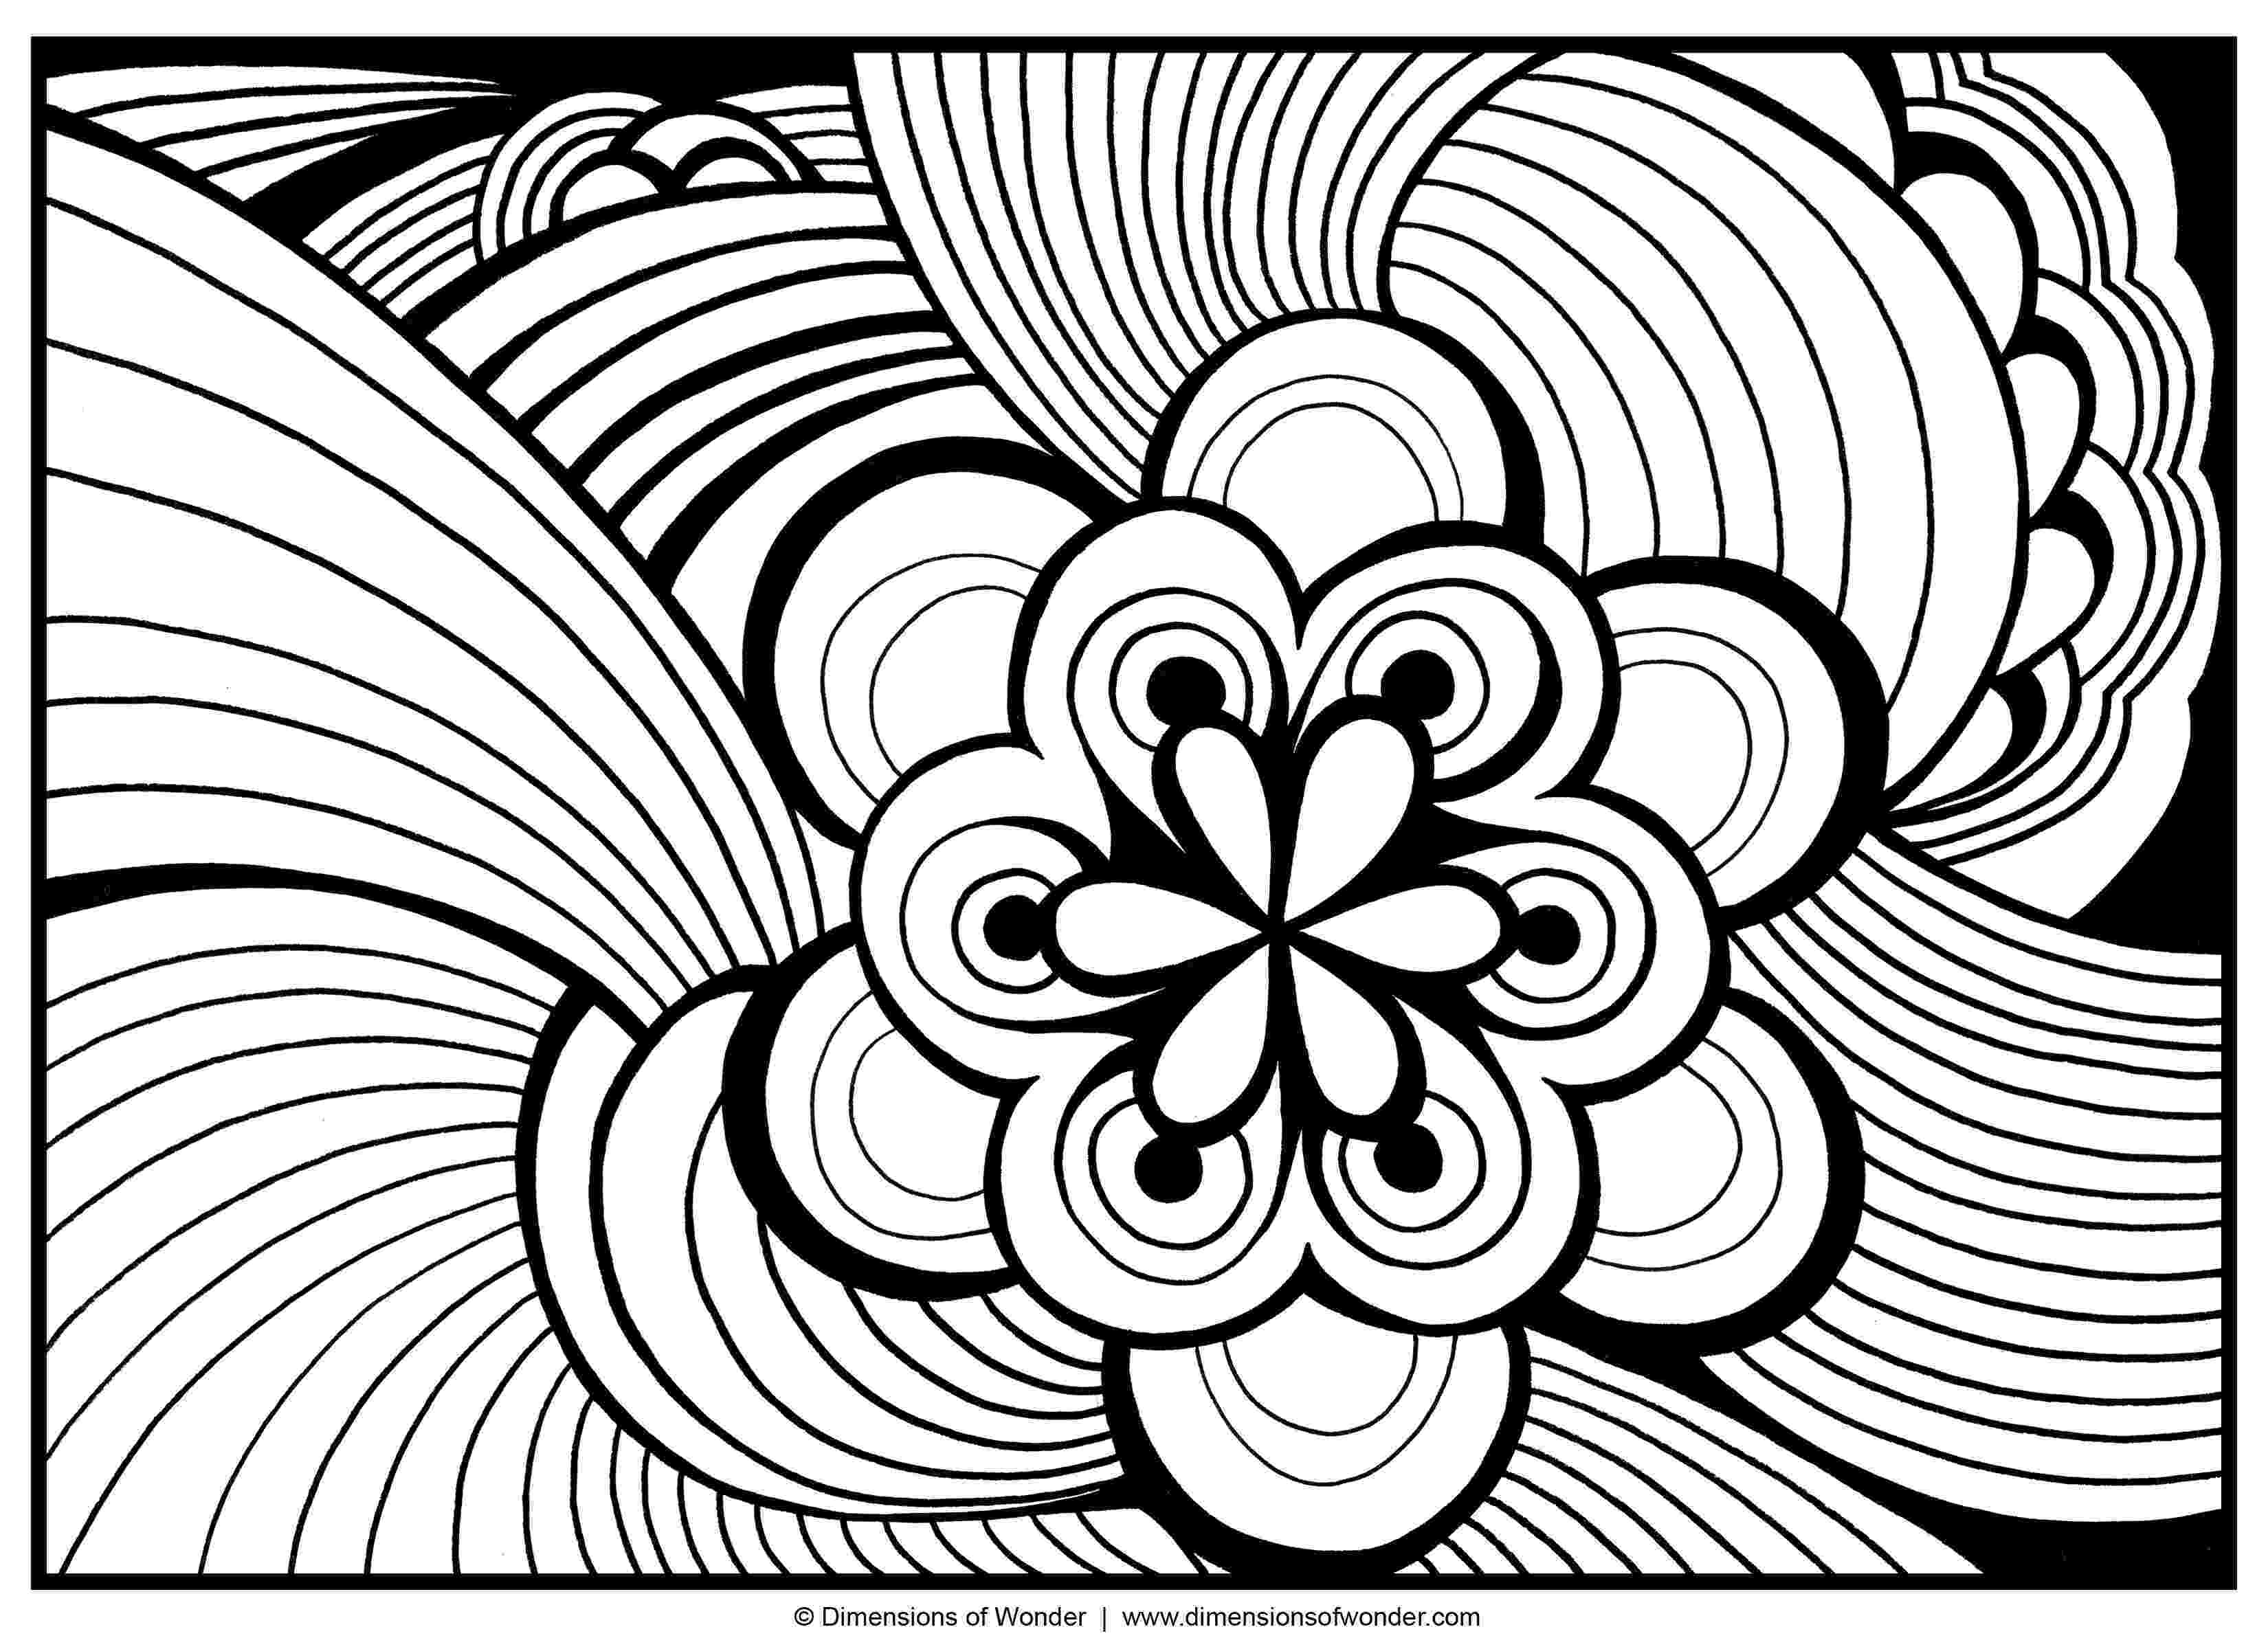 artistic coloring pages abstract coloring pages free large images coloring pages artistic